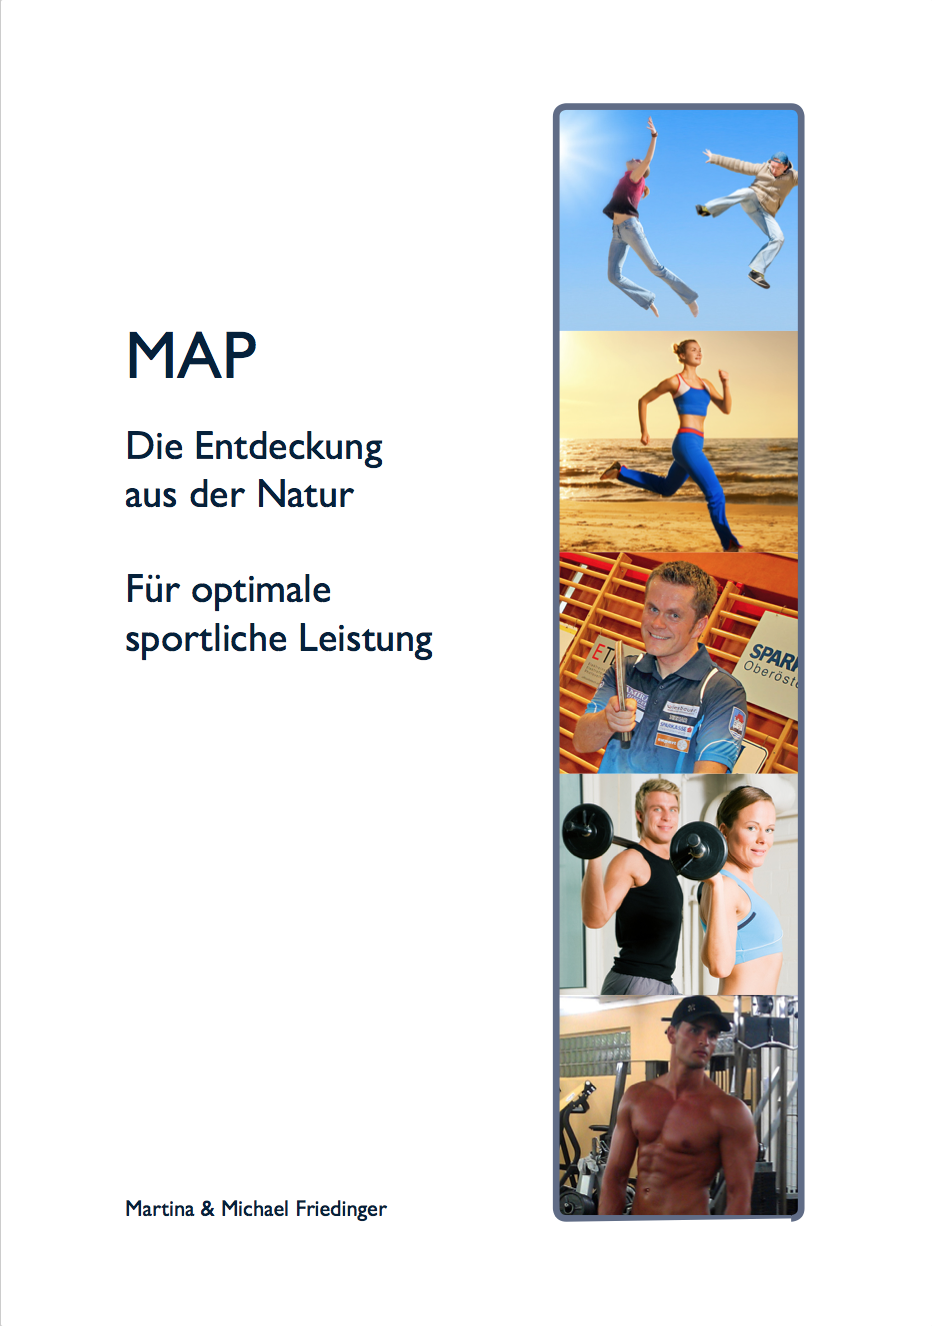 Booklet MAP im Sport (Martina & Michael Friedinger)